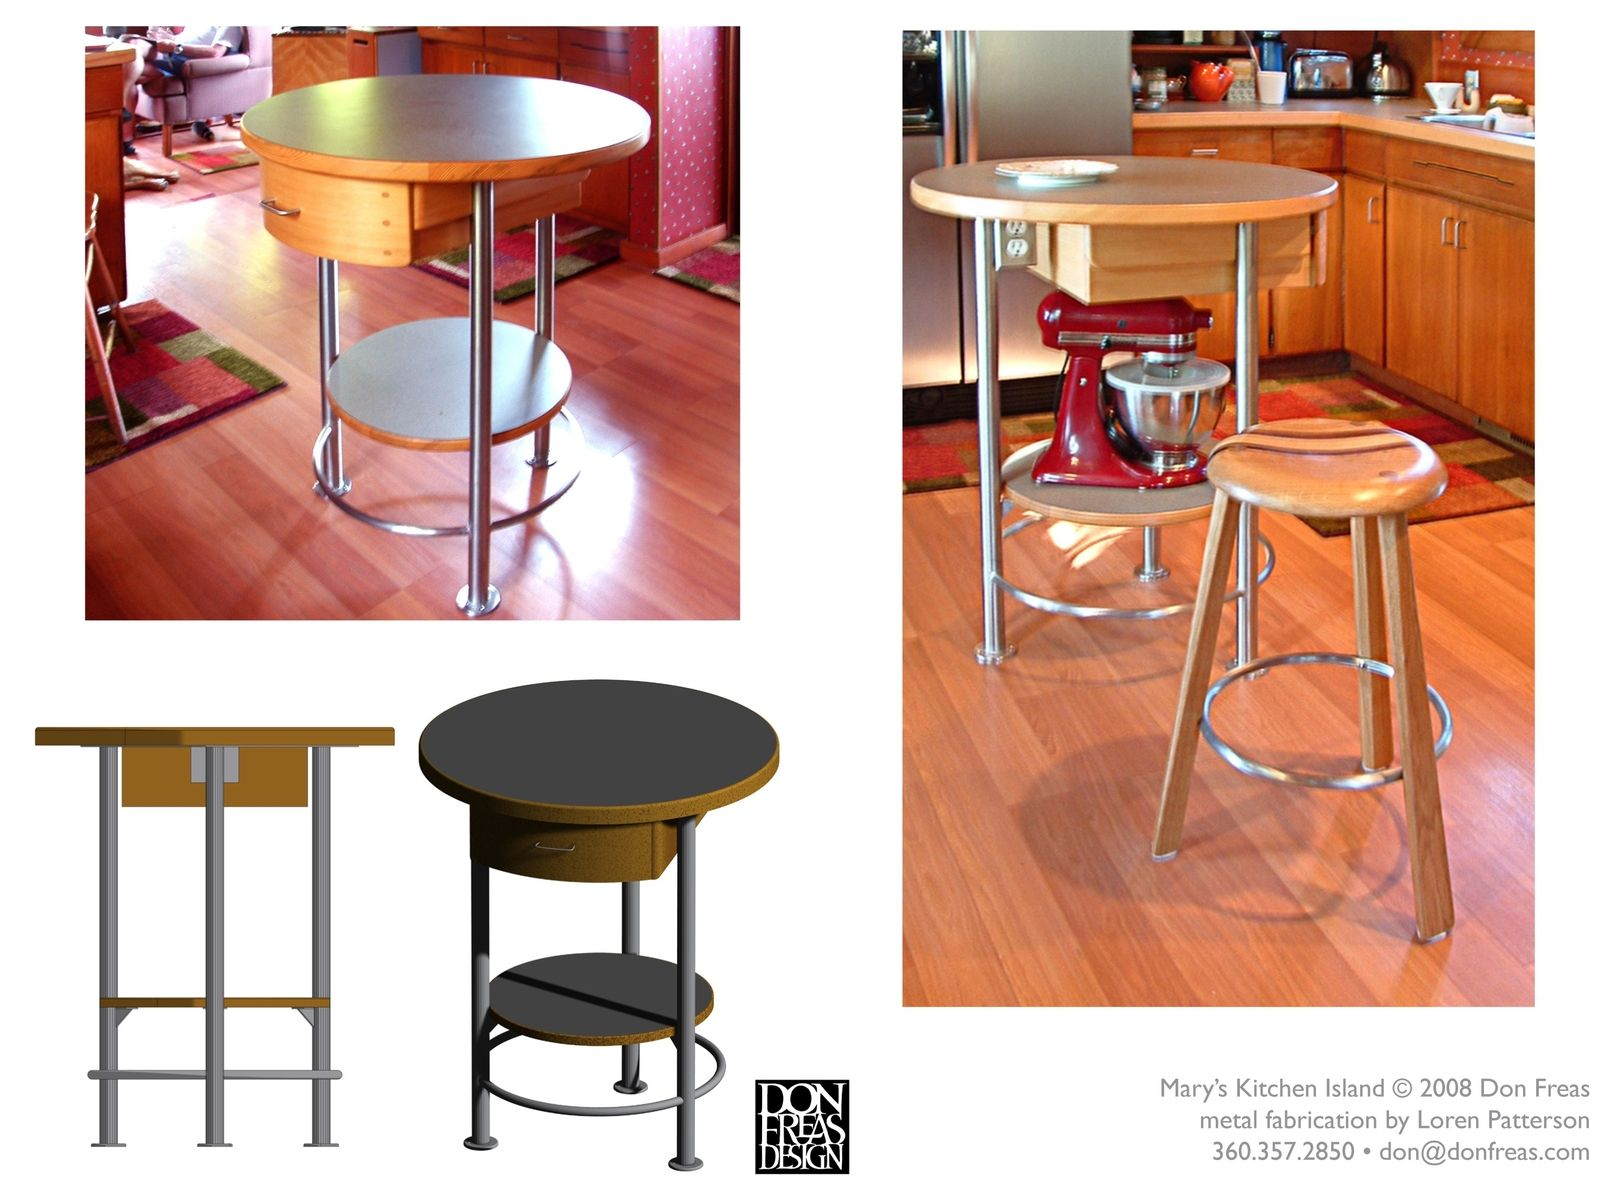 Kitchen Island in Stainless Steel and Wood